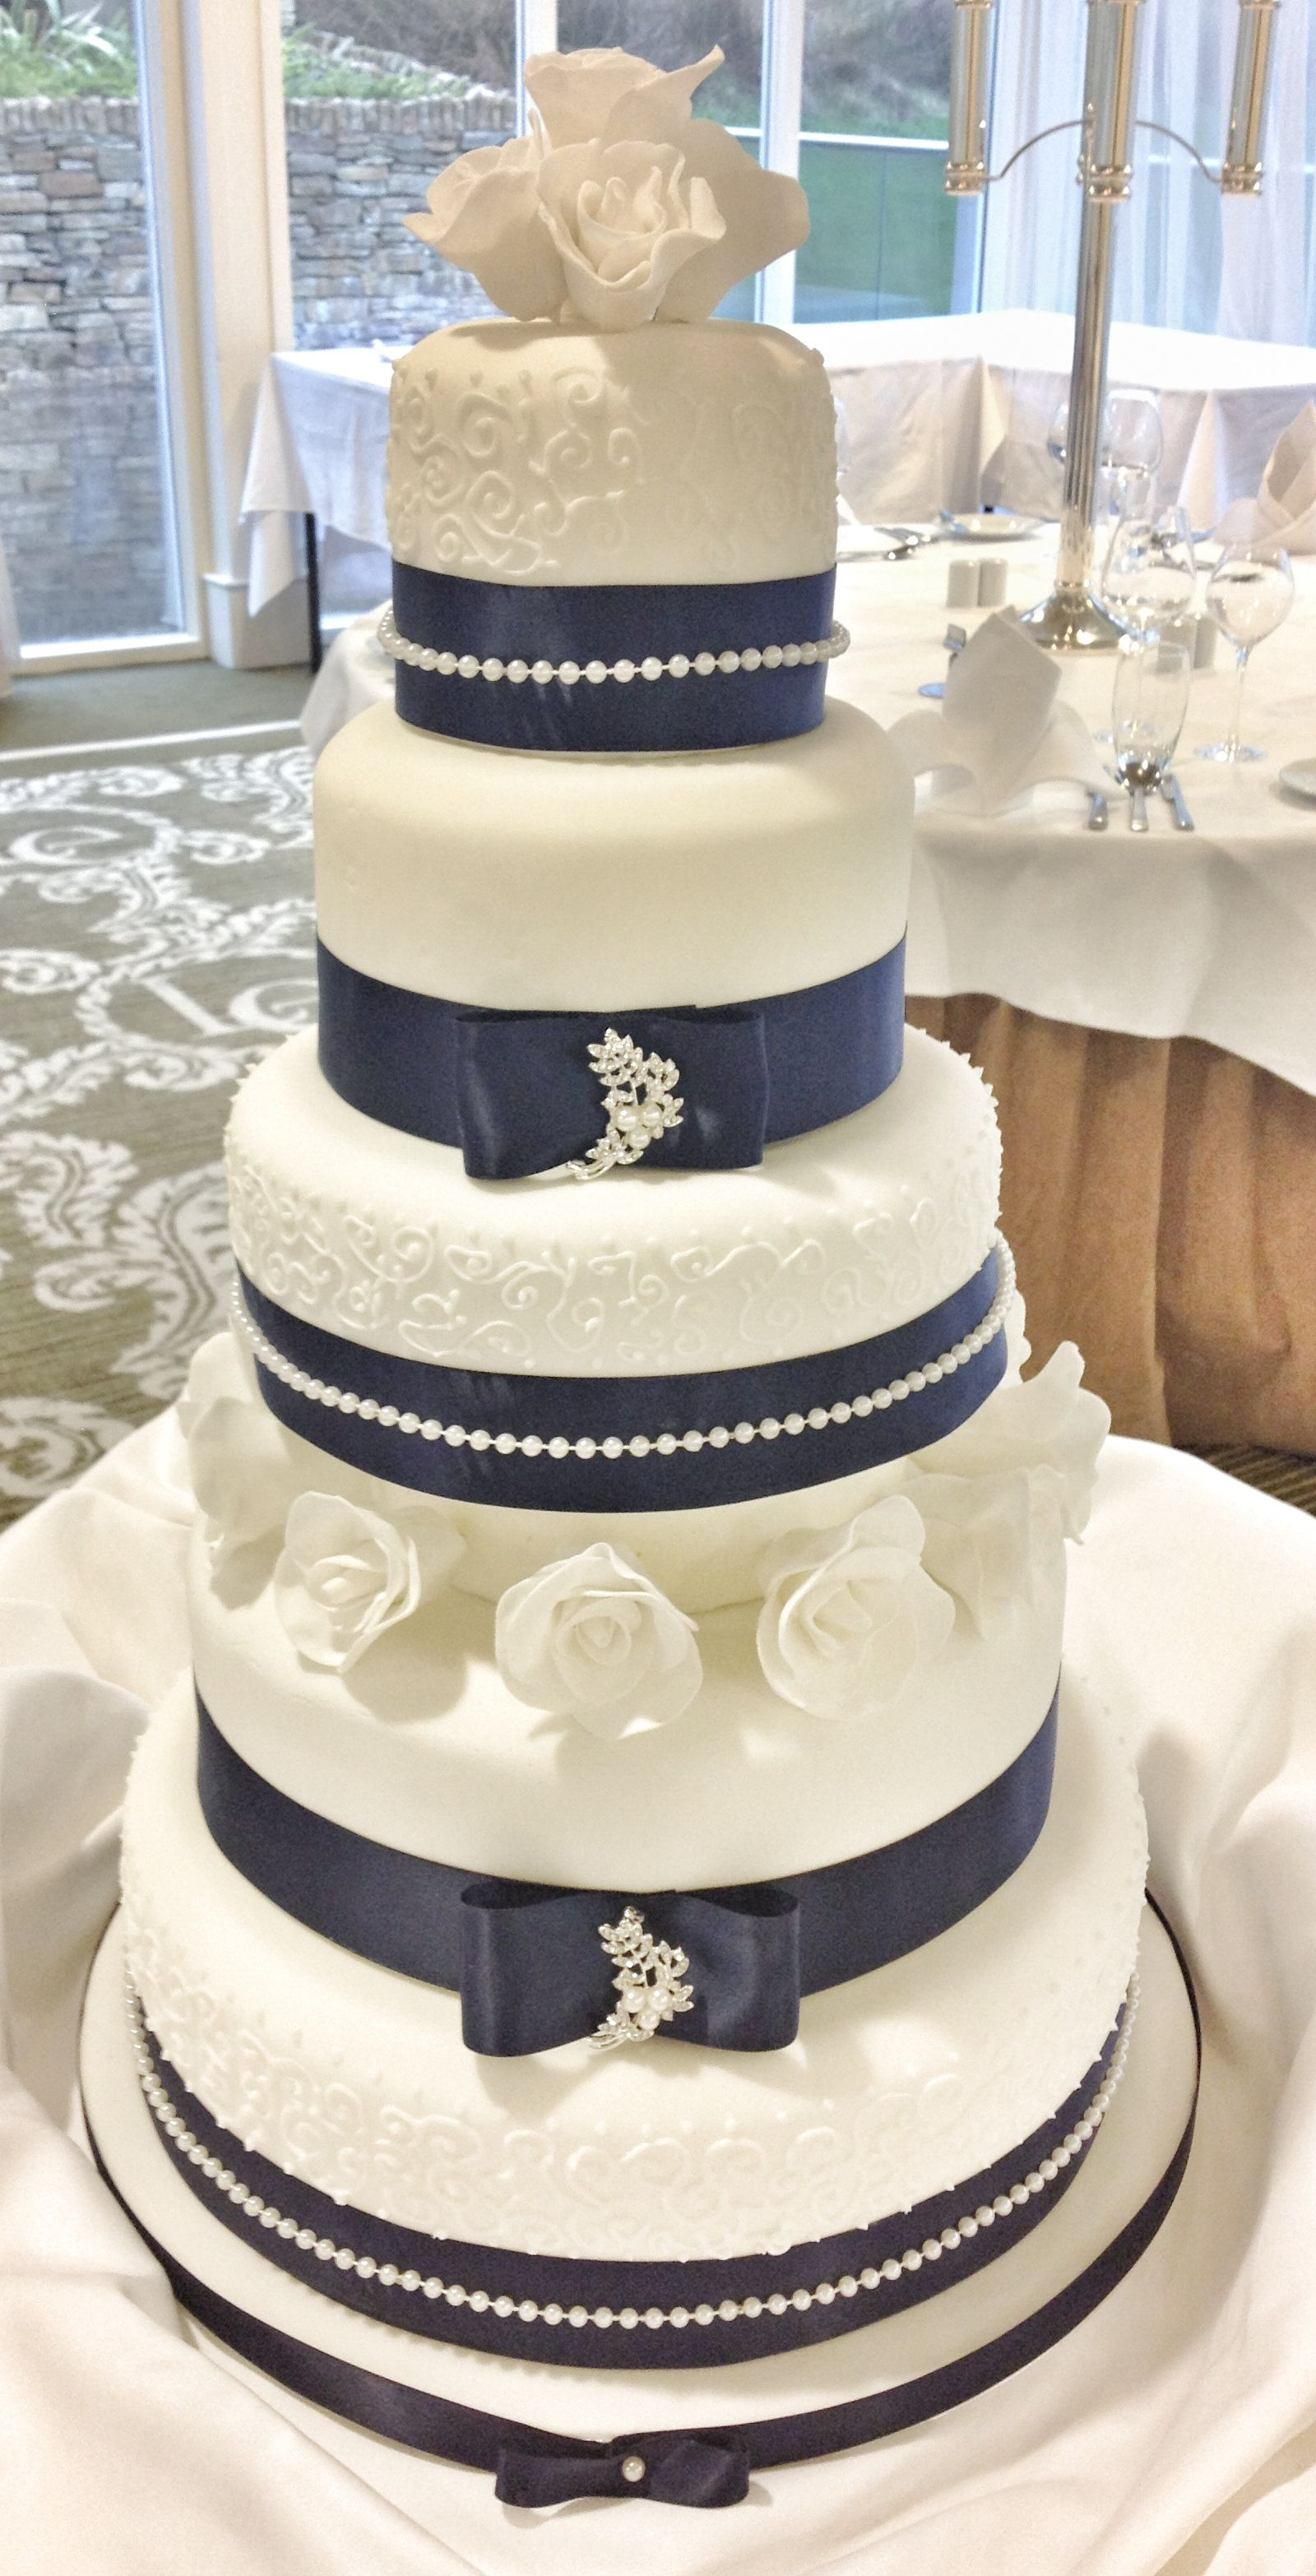 Fab #WeddingCake by chef Jenny at #LoughEskeCastle #Donegal | Food ...